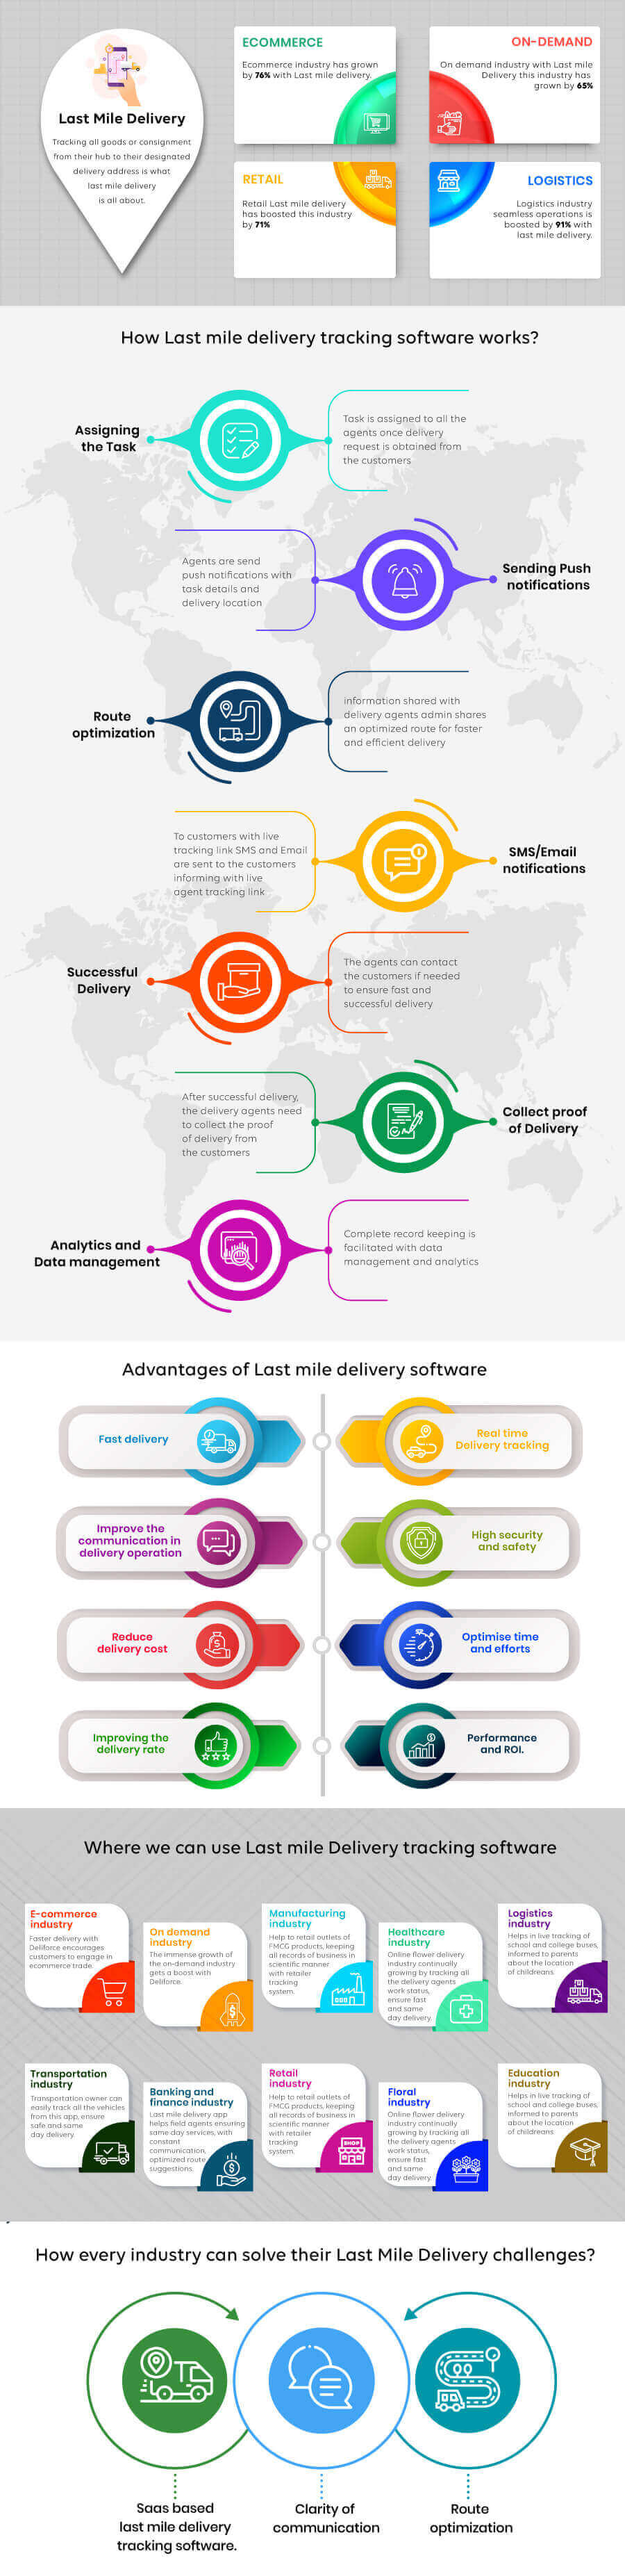 Last mile delivery software Guide